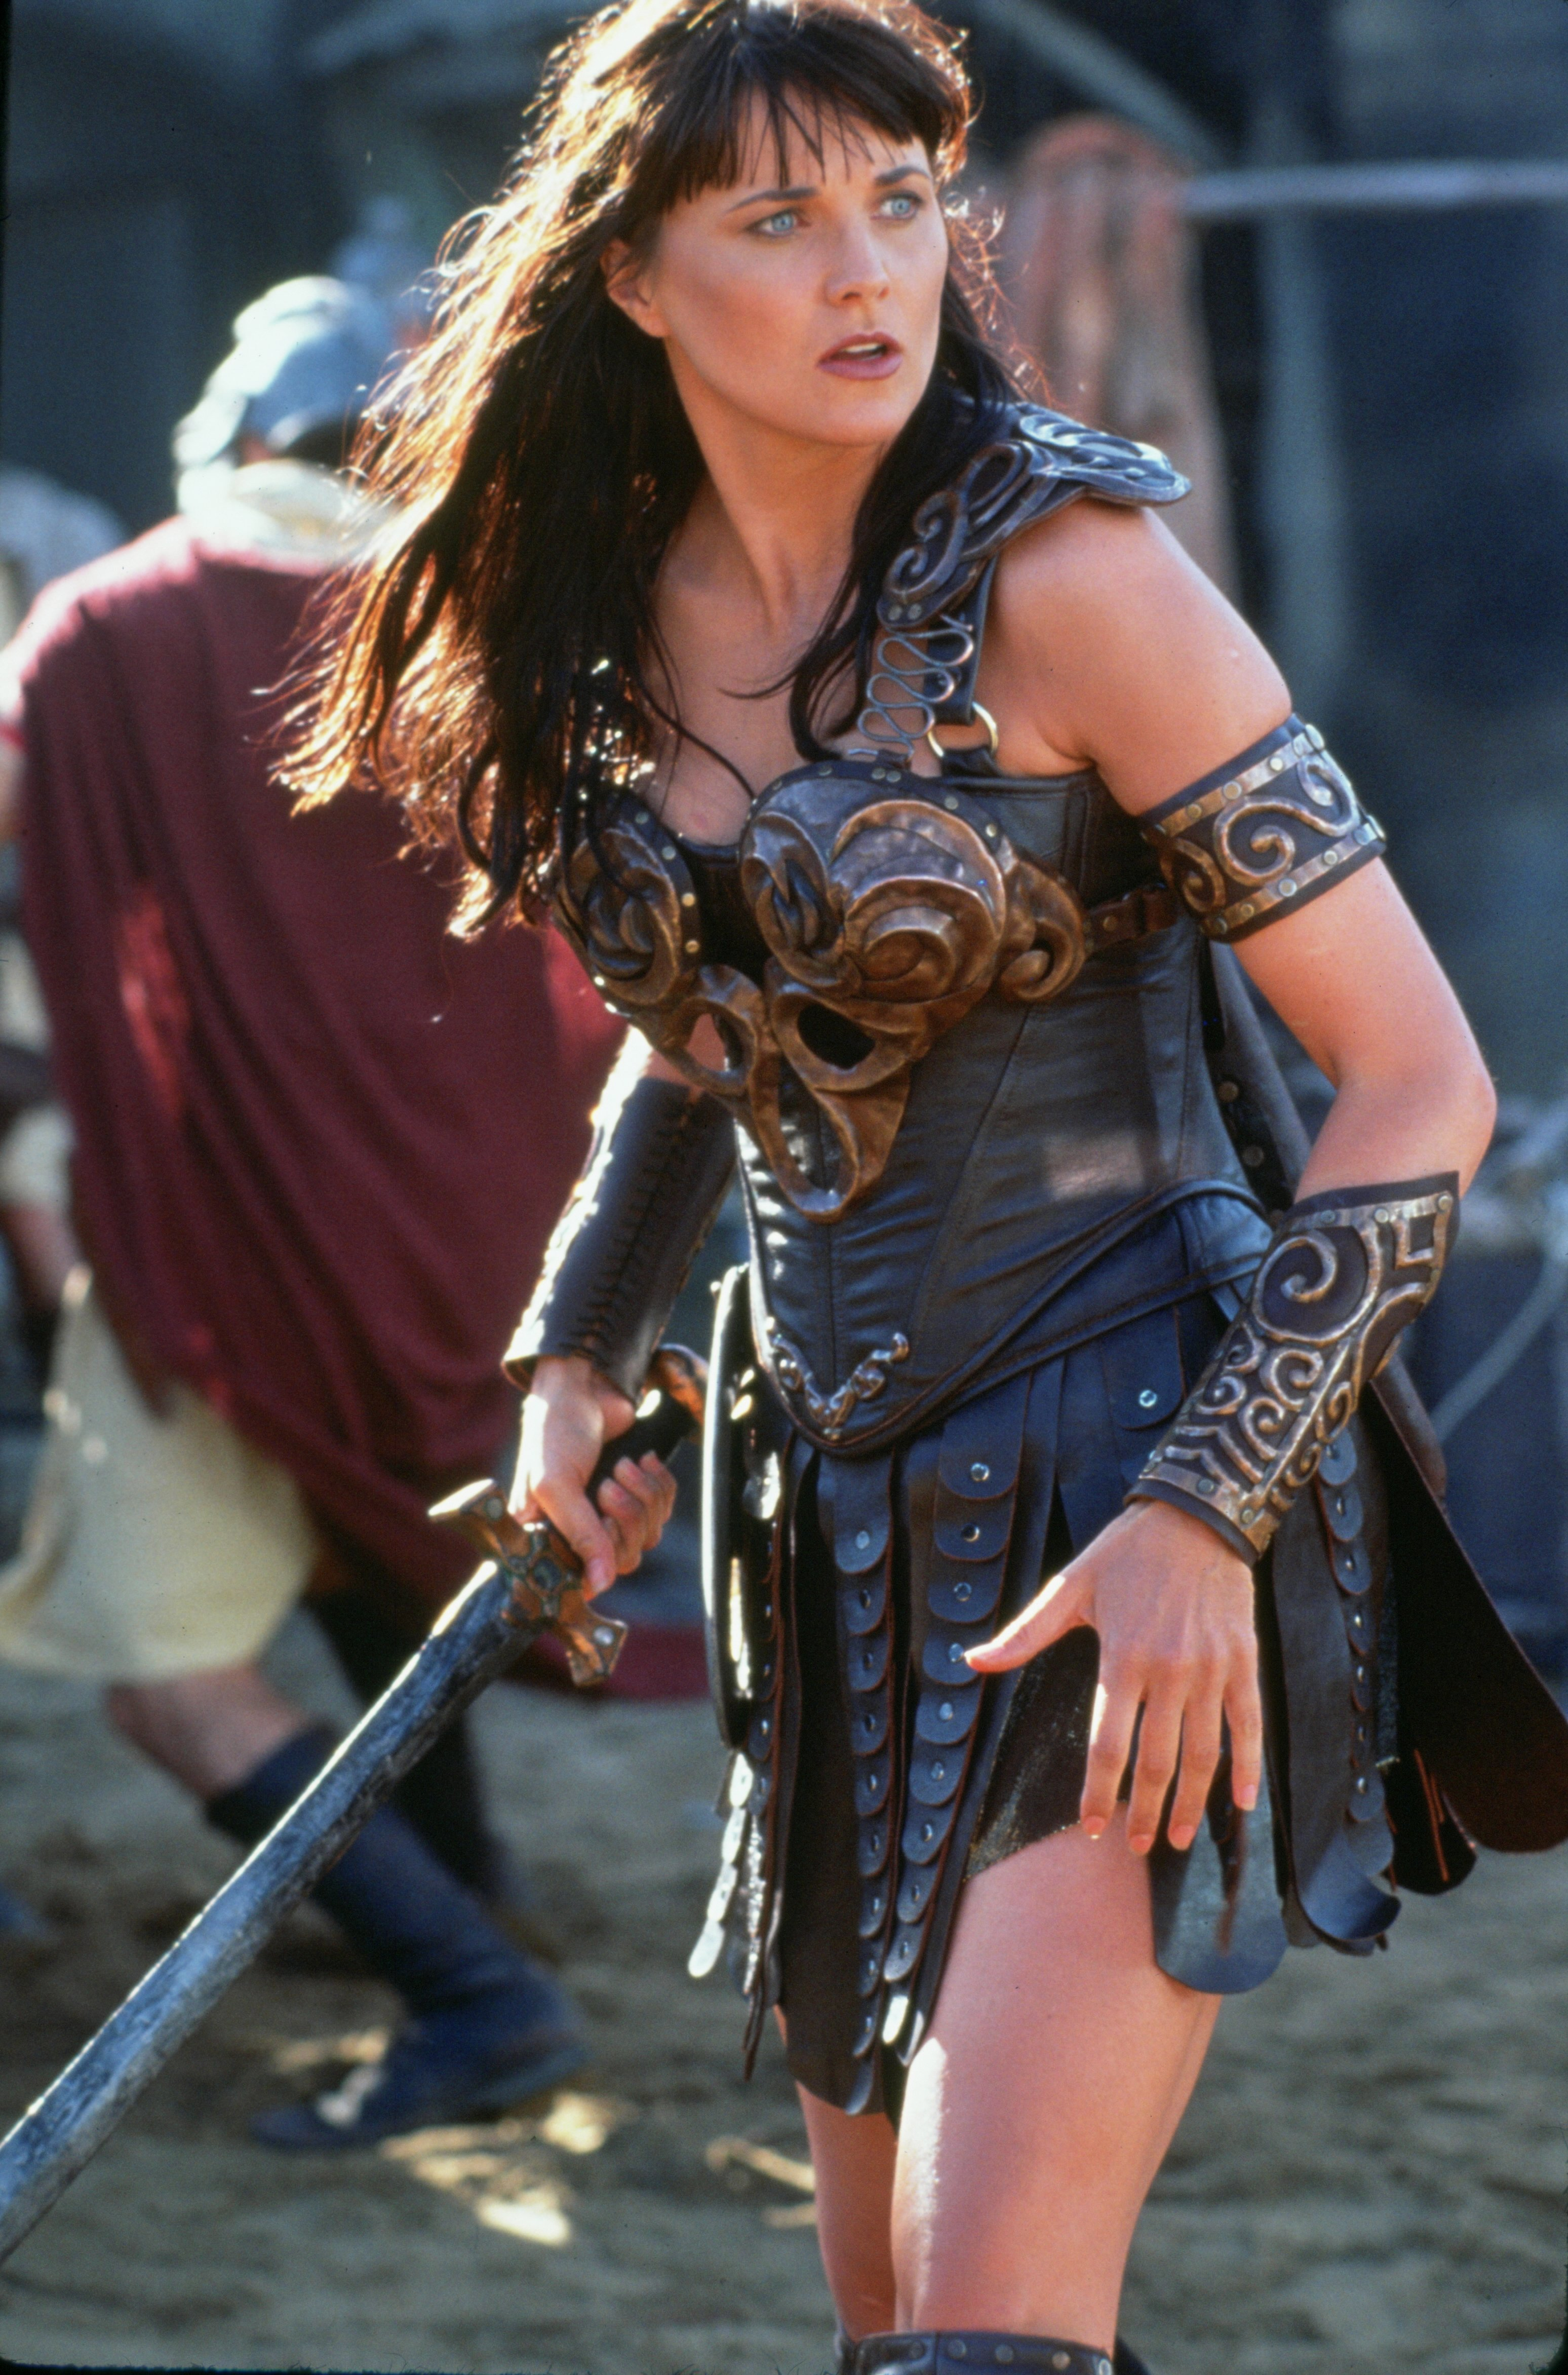 Xena Warrior Princess Costume 30 Things You Didn't K...